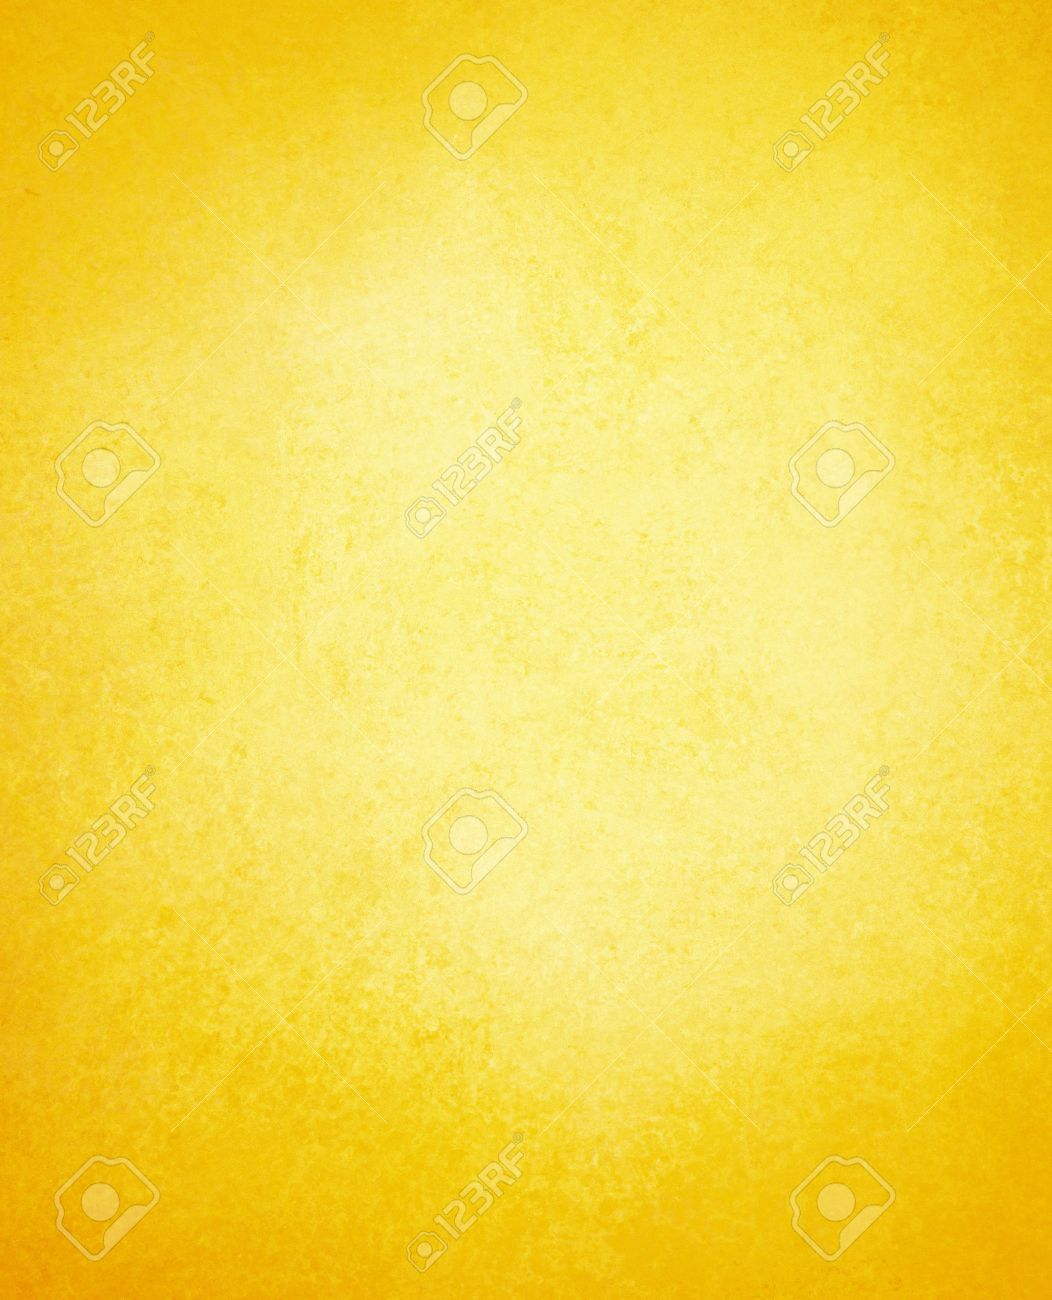 Background image center - Abstract Gold Background Yellow Color Light Center Spotlight Faint Orange Vintage Grunge Background Texture